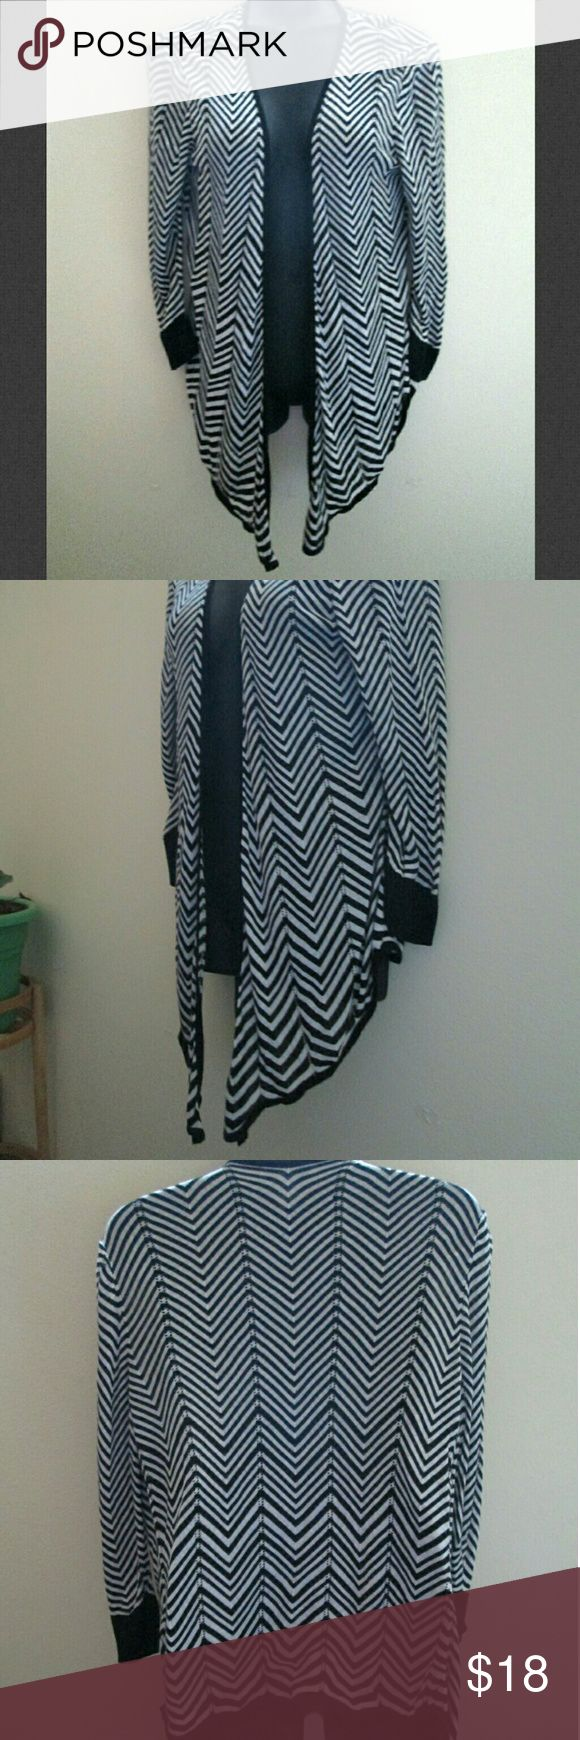 White House Black Market Open Front Chevron Top Excellent condition - no holes, stains or rips. Lightweight, soft fabric. 100% rayon. Comes from a smoke free home.  No trades. No holds. White House Black Market Tops Blouses